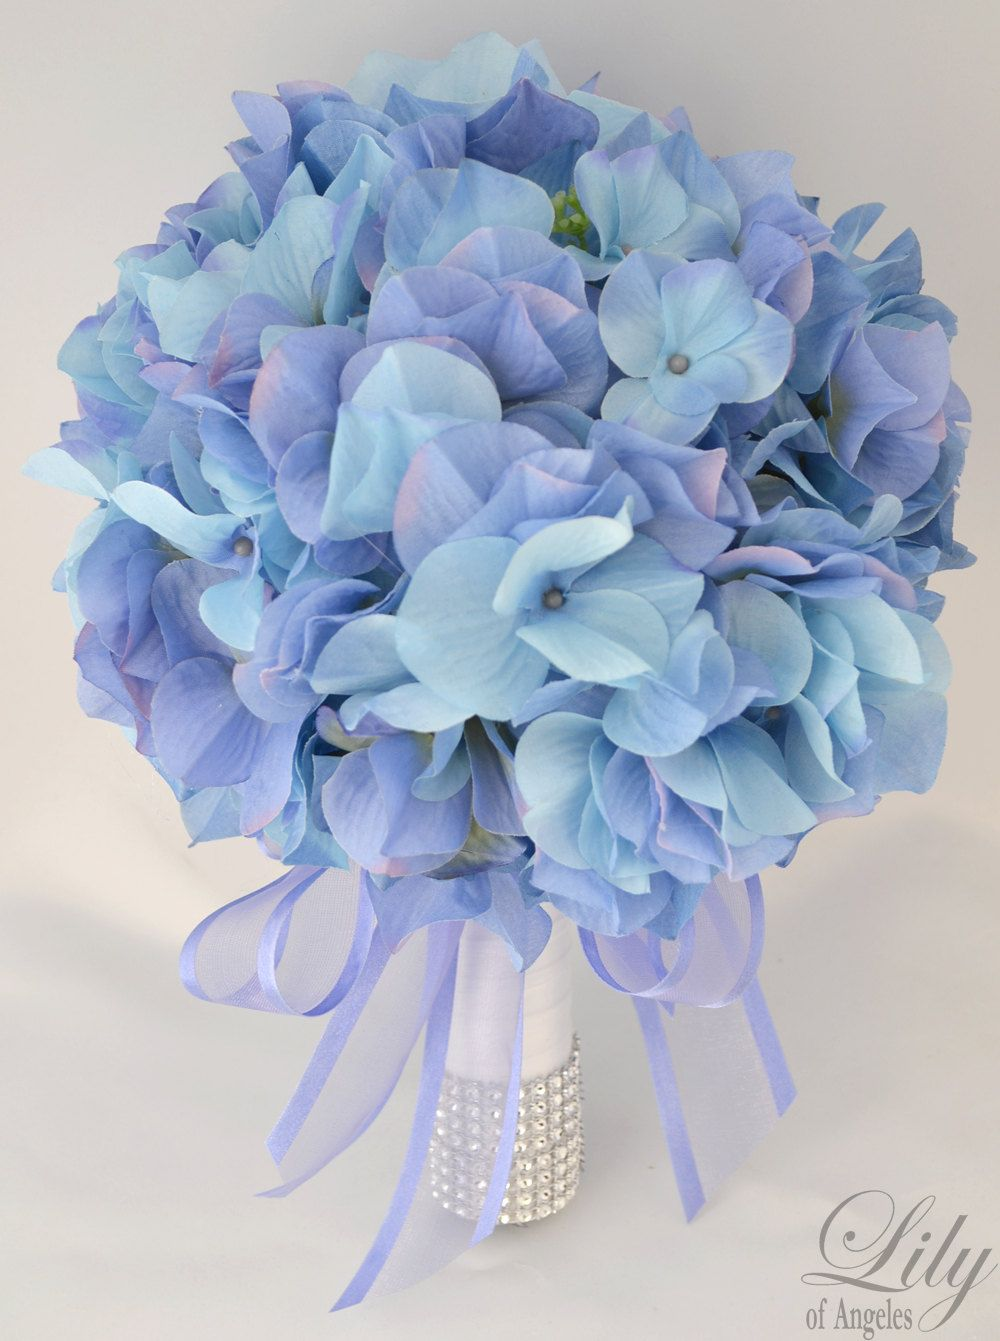 Periwinkle blue hydrangeas use your floral arrangements to periwinkle blue hydrangeas use your floral arrangements to incorporate one of this seasons silk flower mightylinksfo Images